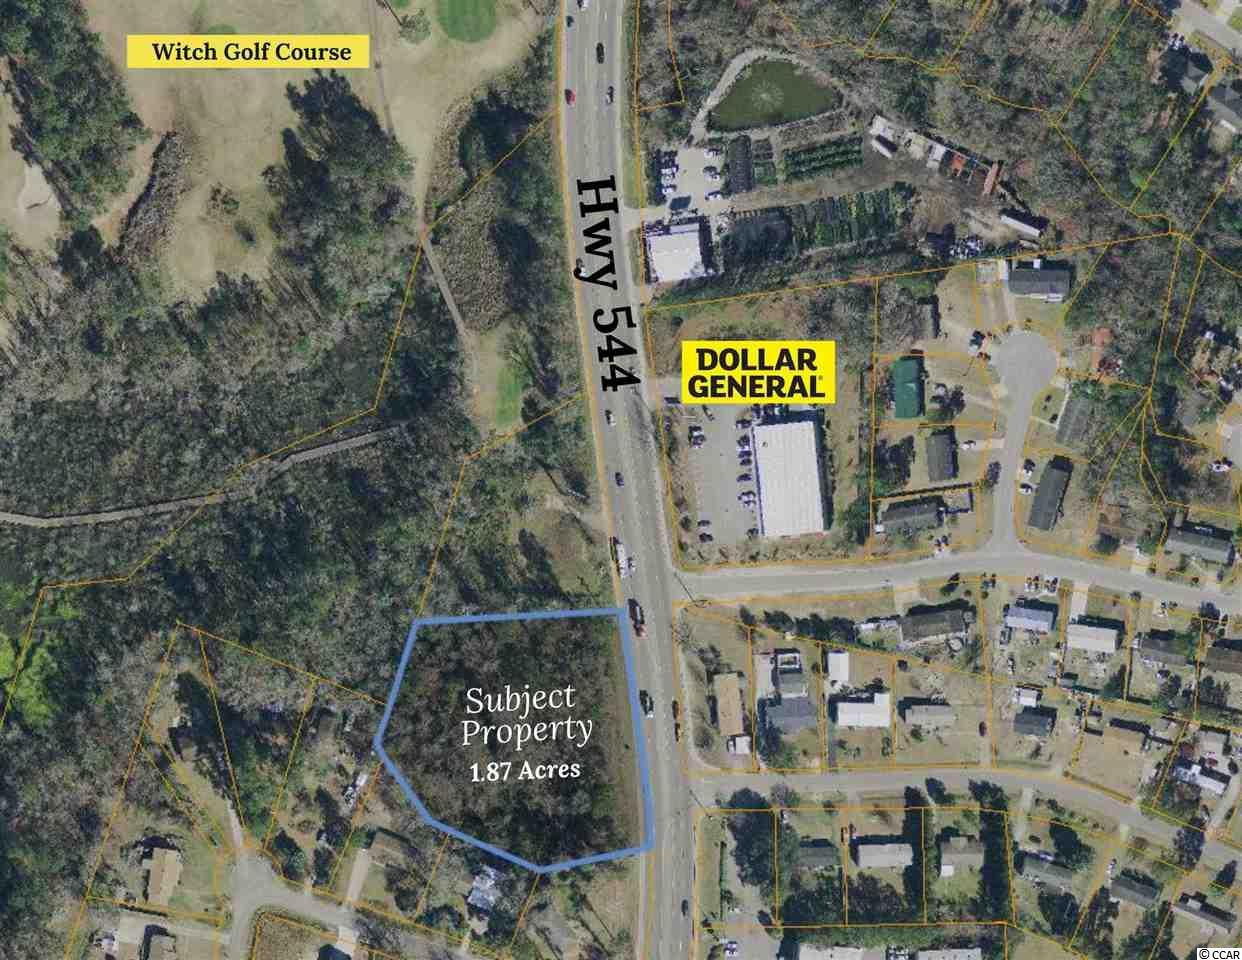 This property is almost 2.0 acres in size and is located between the Socastee Community and Coastal Carolina University. There is a lot of growth potential in this area especially with the continued growth of the College and the Technical College. The property has over 300 ft of road frontage and can be zoned to a commercial usage.